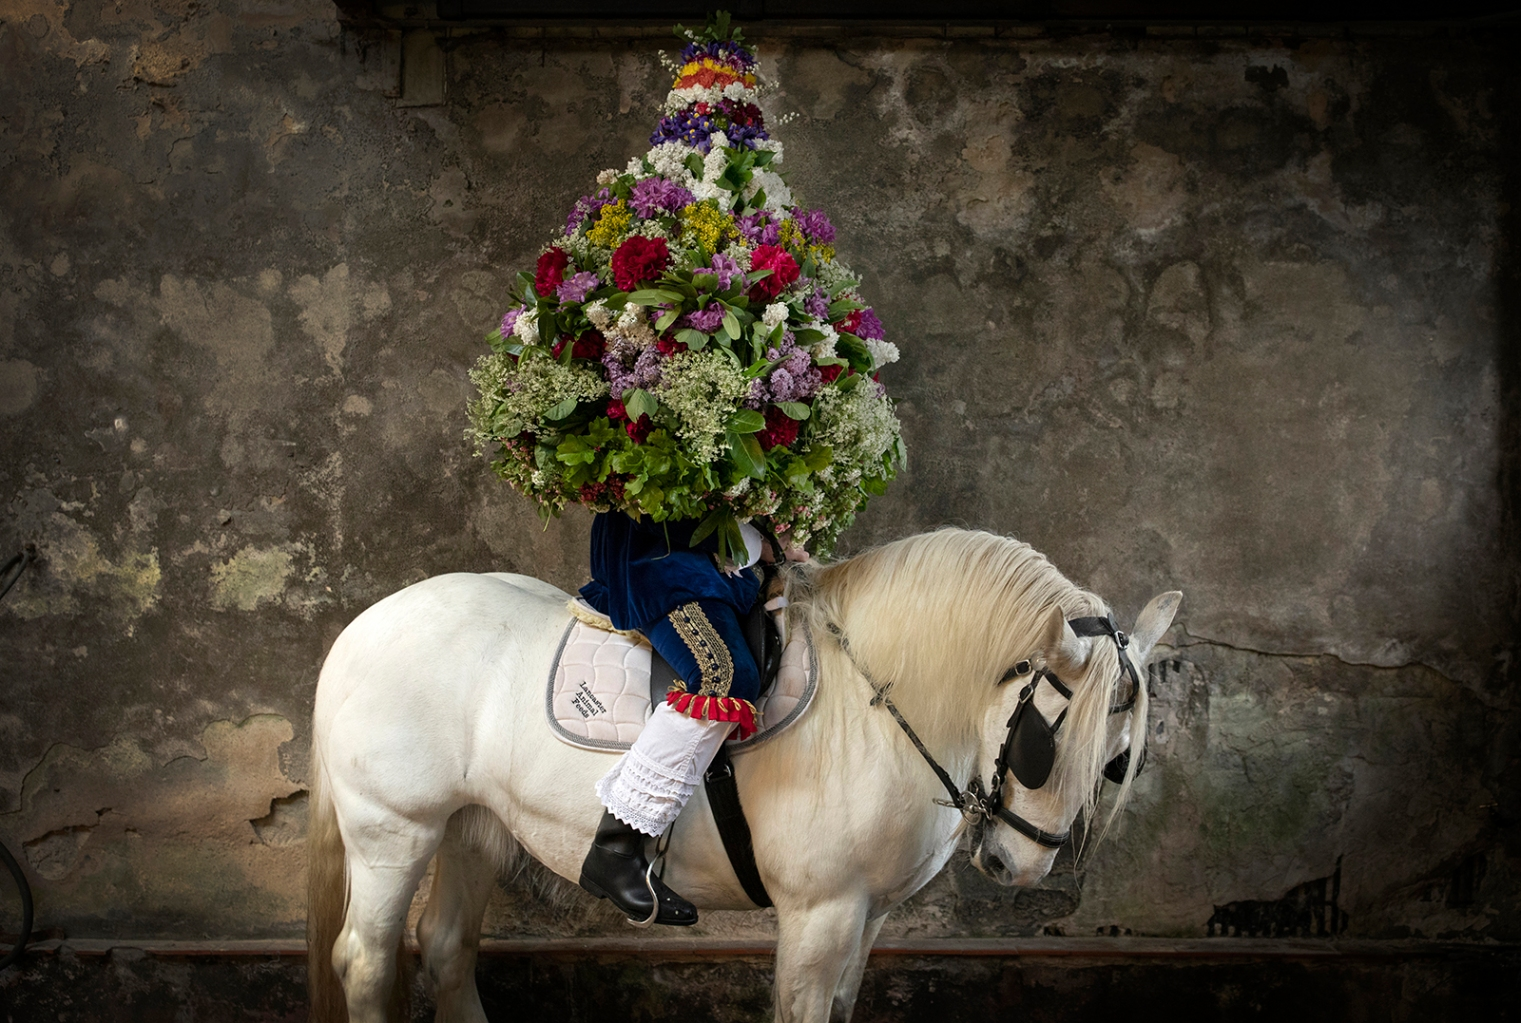 """The King,"" Johnathon Haddock, poses for a portrait with the garland before the procession during Castleton Garland Day in Castleton, England, on May 29. The event dates to the 1700s and is believed to be an ancient fertility rite with Celtic connections. Dan Kitwood/Getty Images"